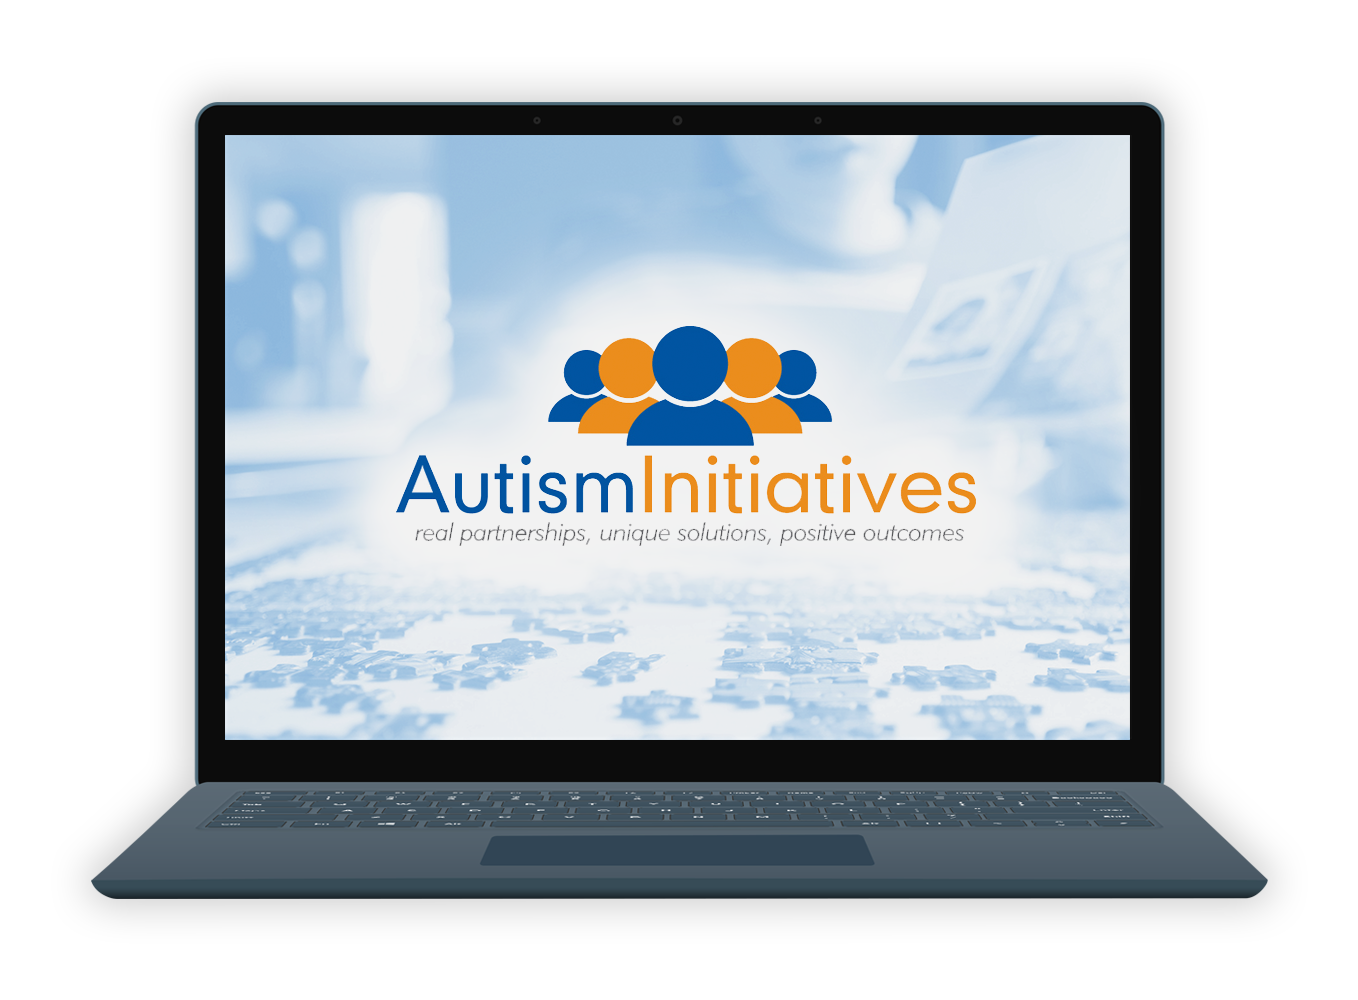 EiB Autism Initiatives Page - Laptop with Autism Initiatives logo